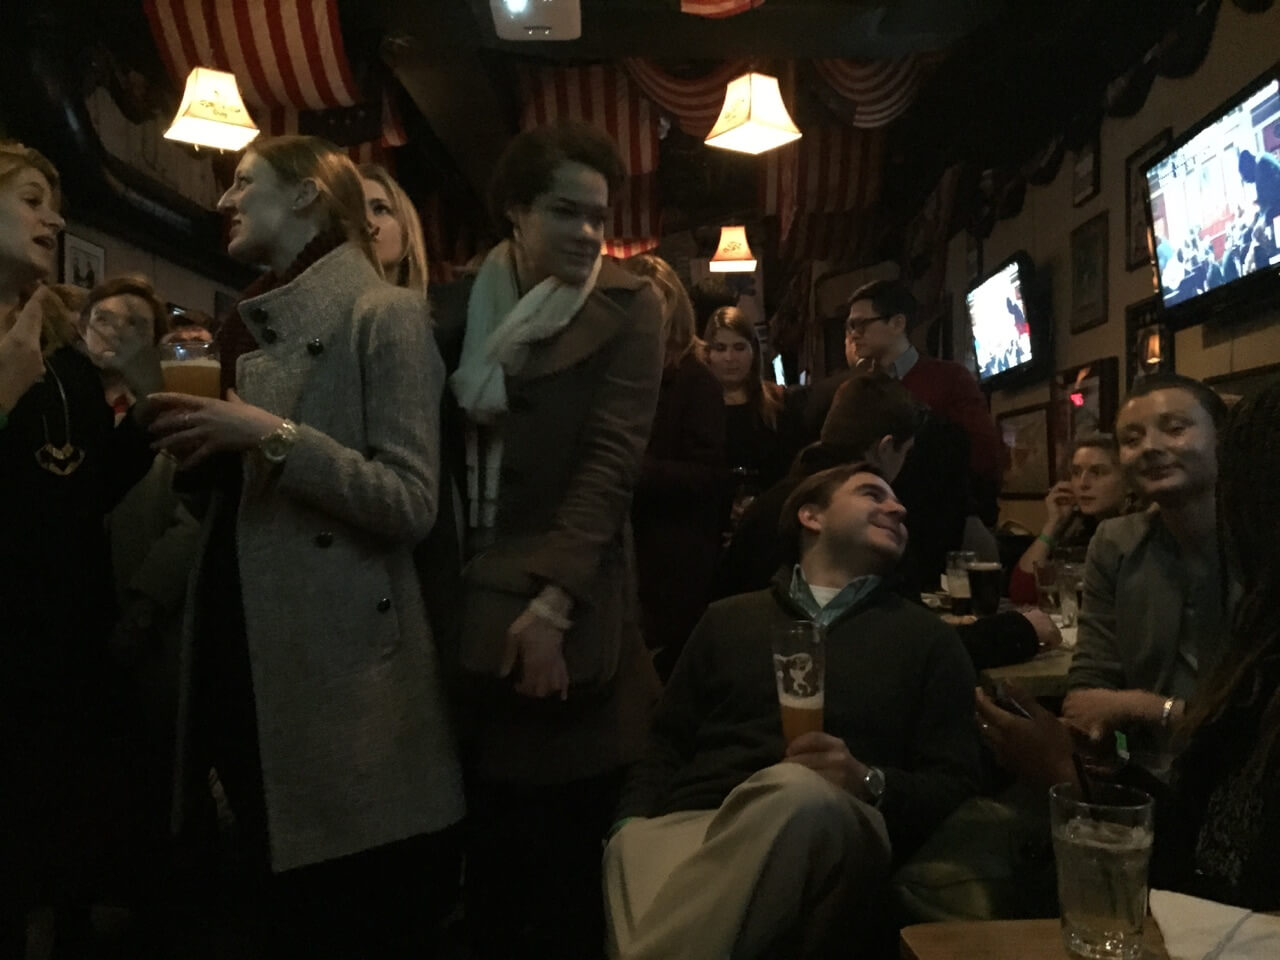 Conservative youths unimpressed by SOTU at Capitol Lounge